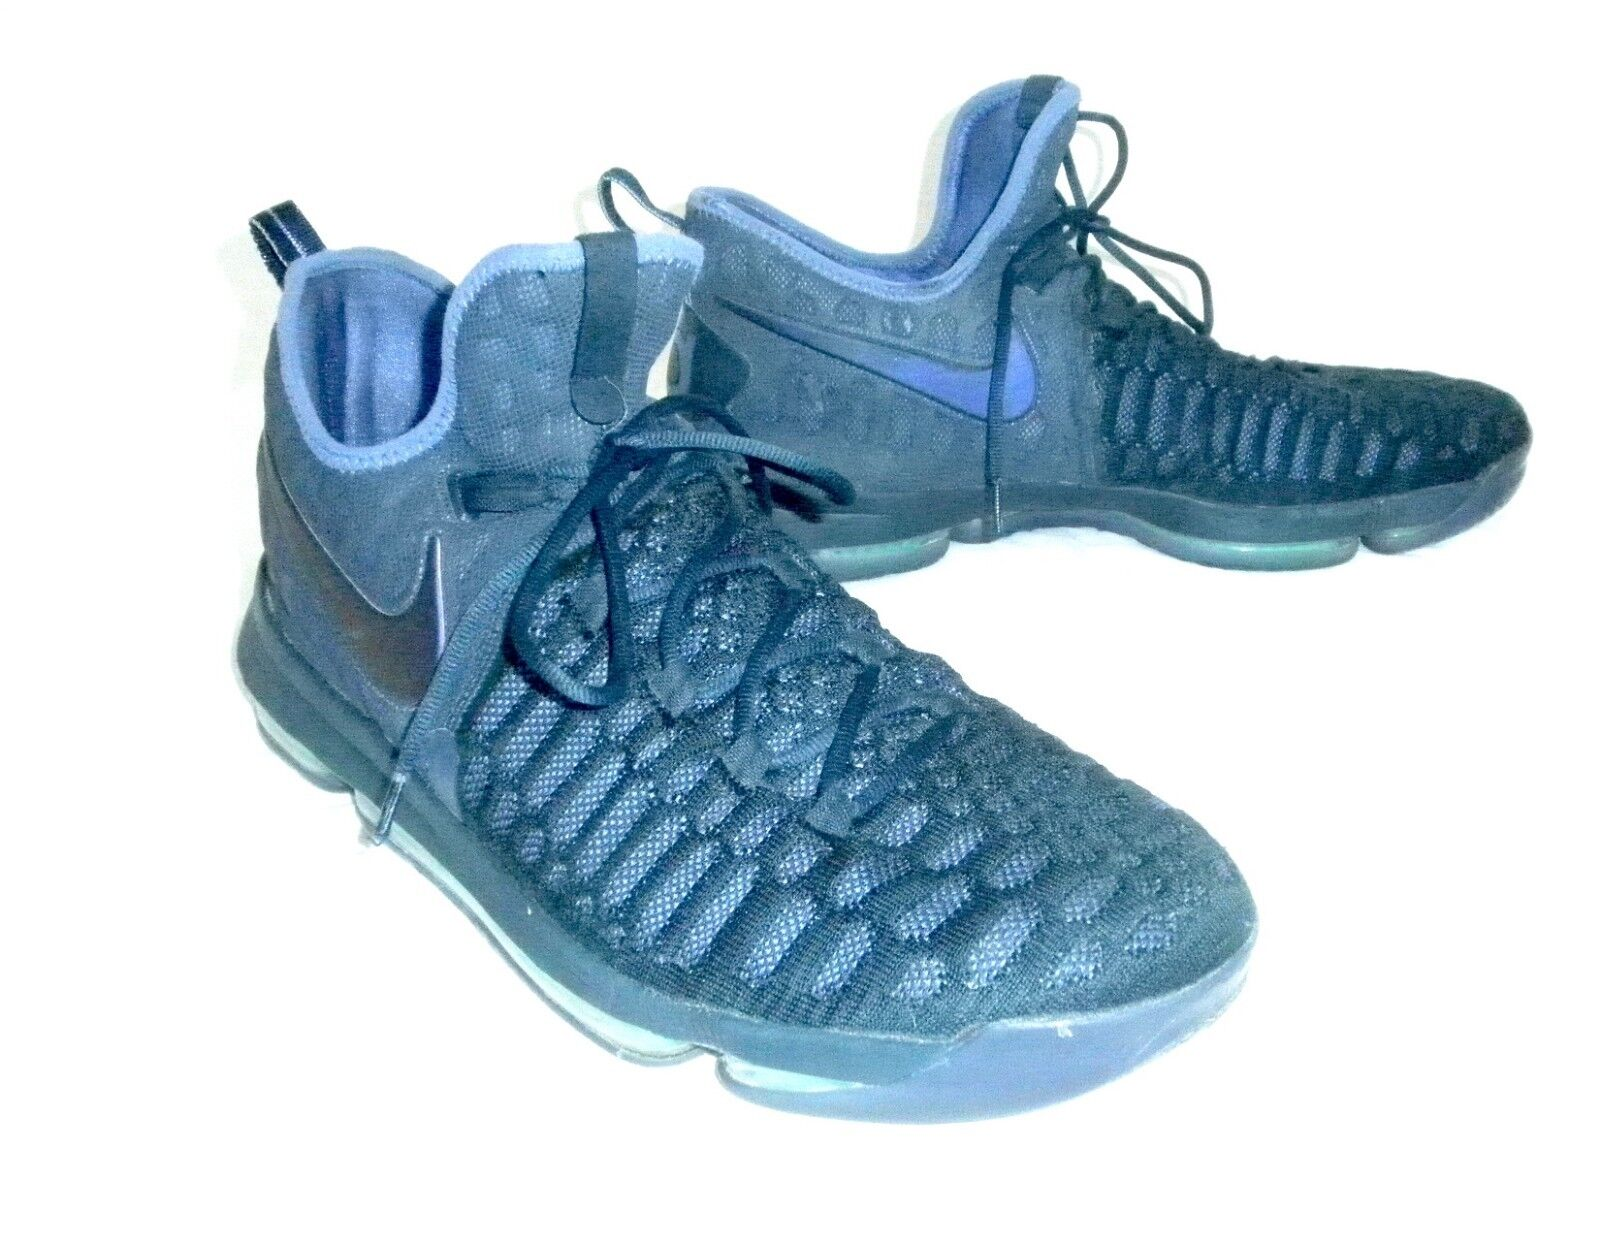 Nike Zoom KD9 Kevin Durant Athletic shoes Royal bluee Men 17